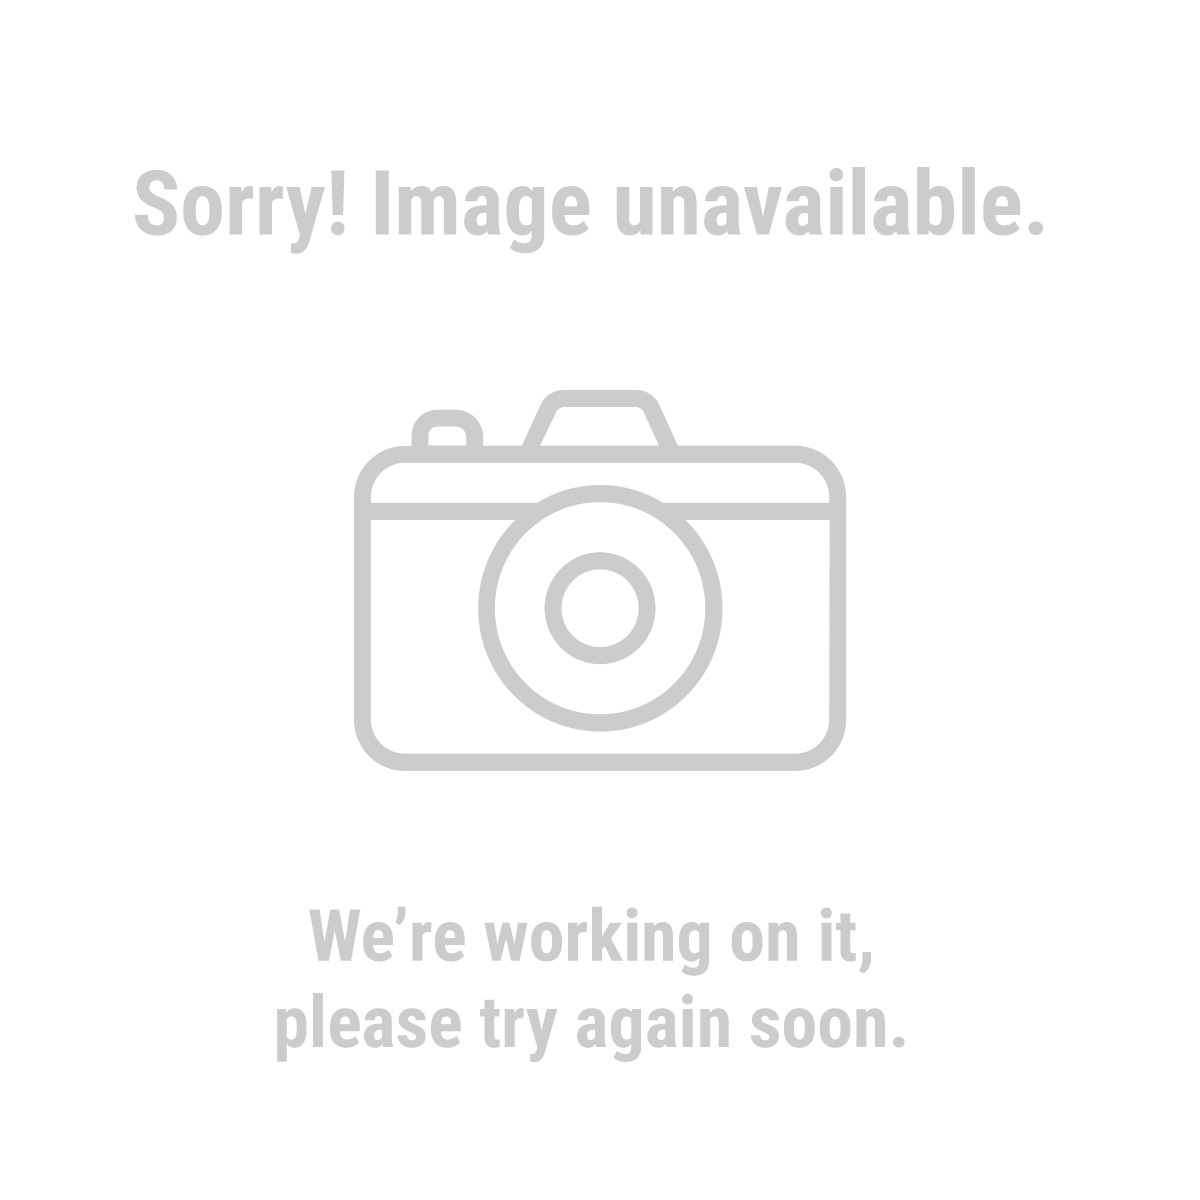 Central Pneumatic 60328 1/5 HP 58 PSI Oilless Airbrush Compressor Kit